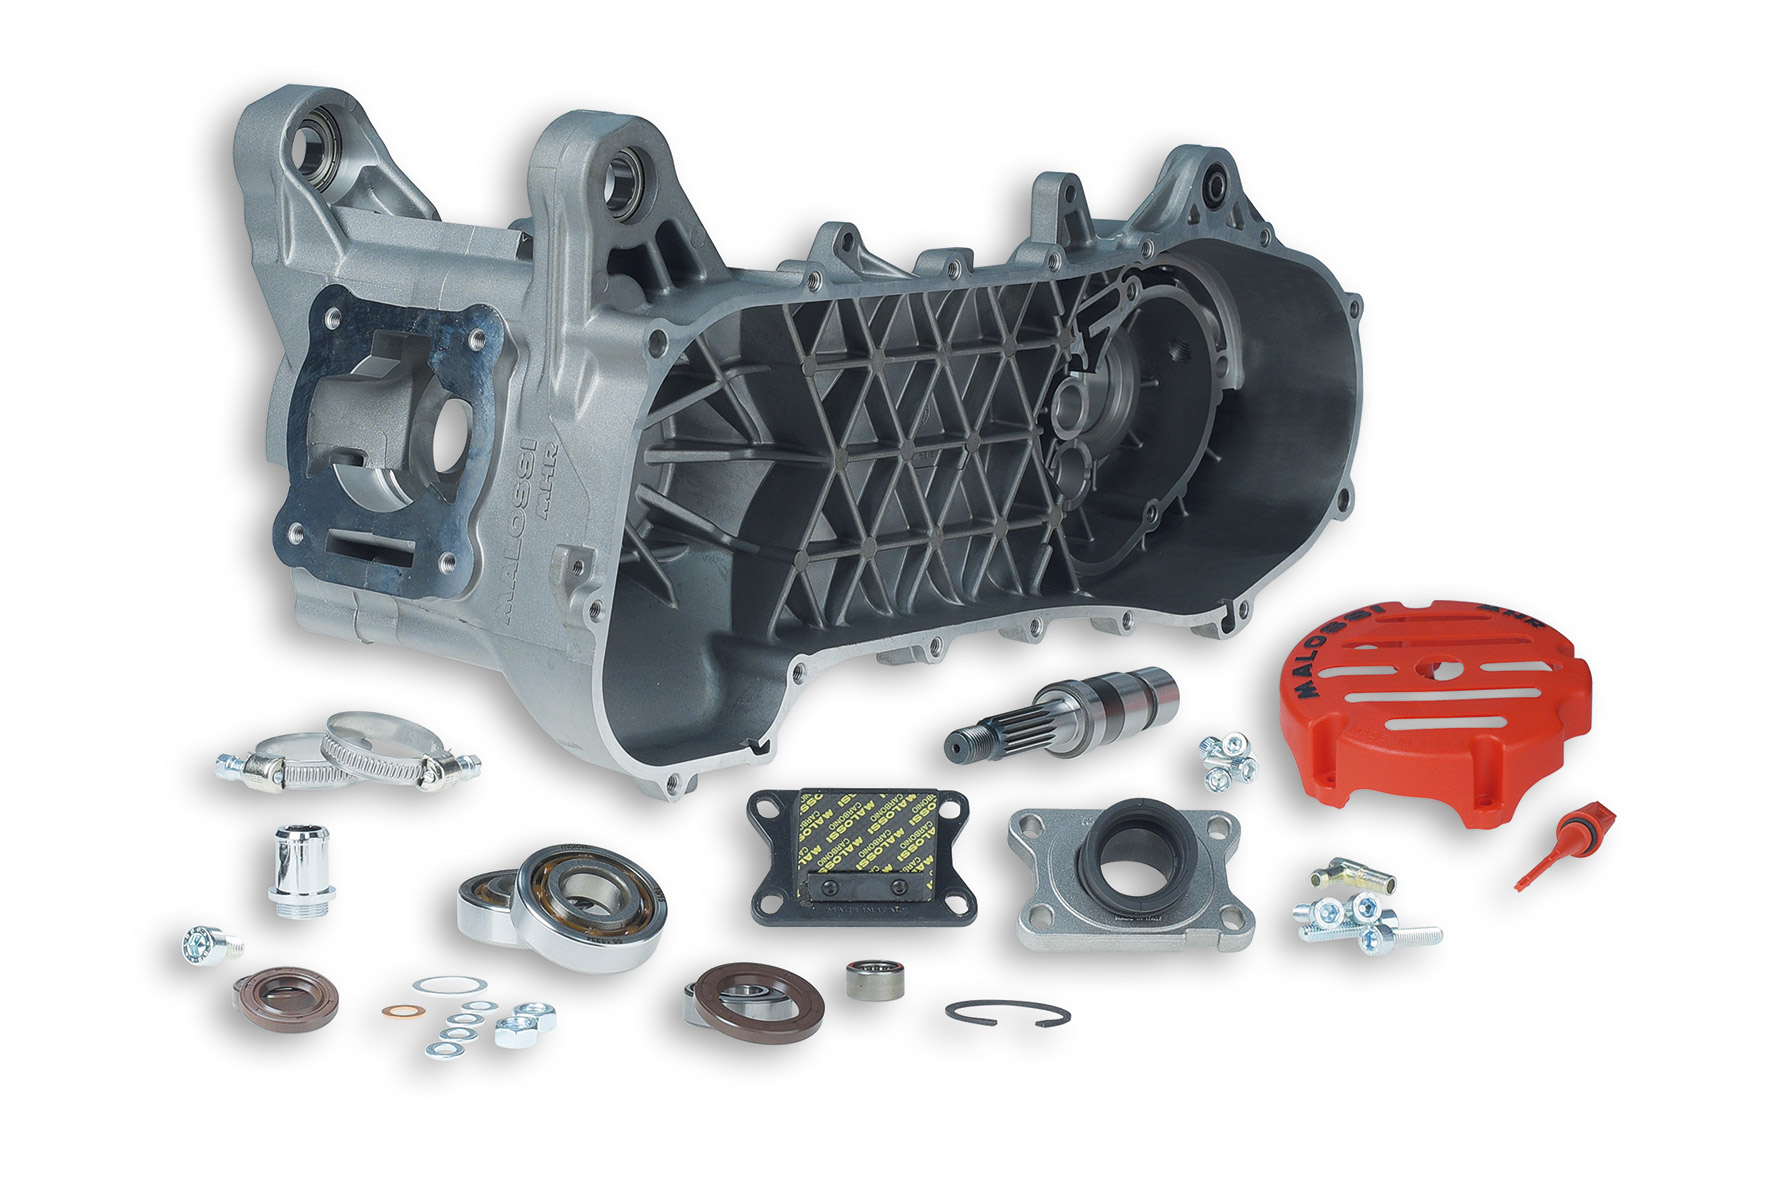 Carter motore completo MHR RC - one (per motore YAMAHA)